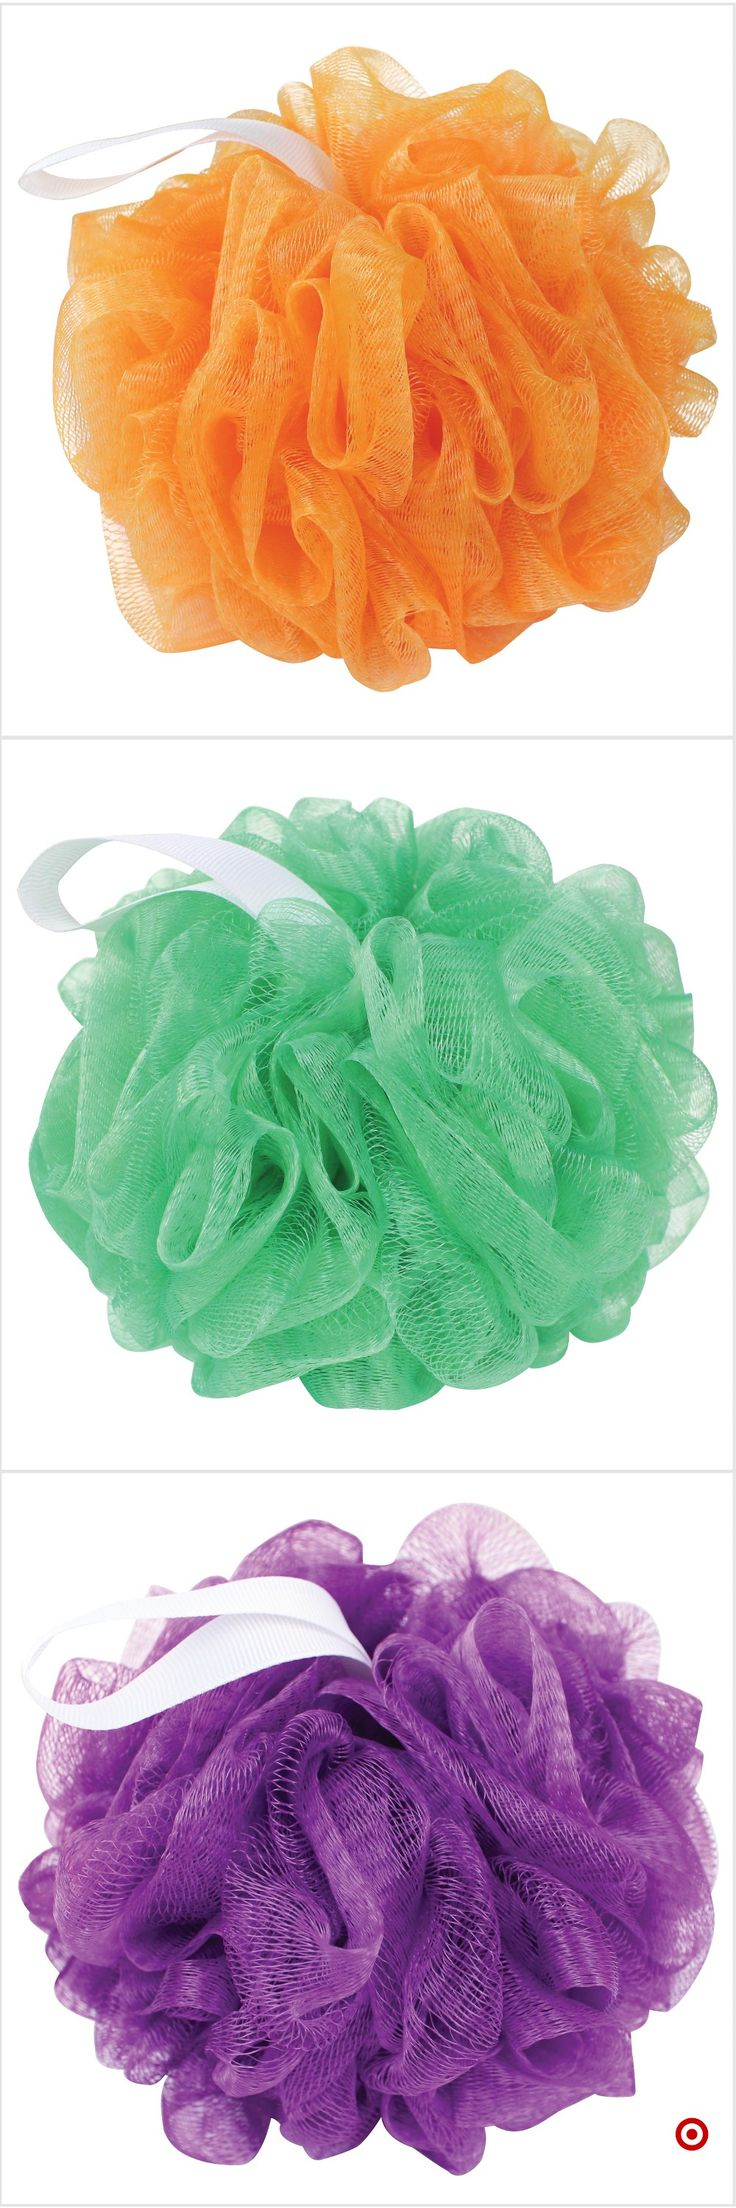 Shop Target for bath sponges and loofahs you will love at great low prices. Free shipping on orders of $35+ or free same-day pick-up in store.